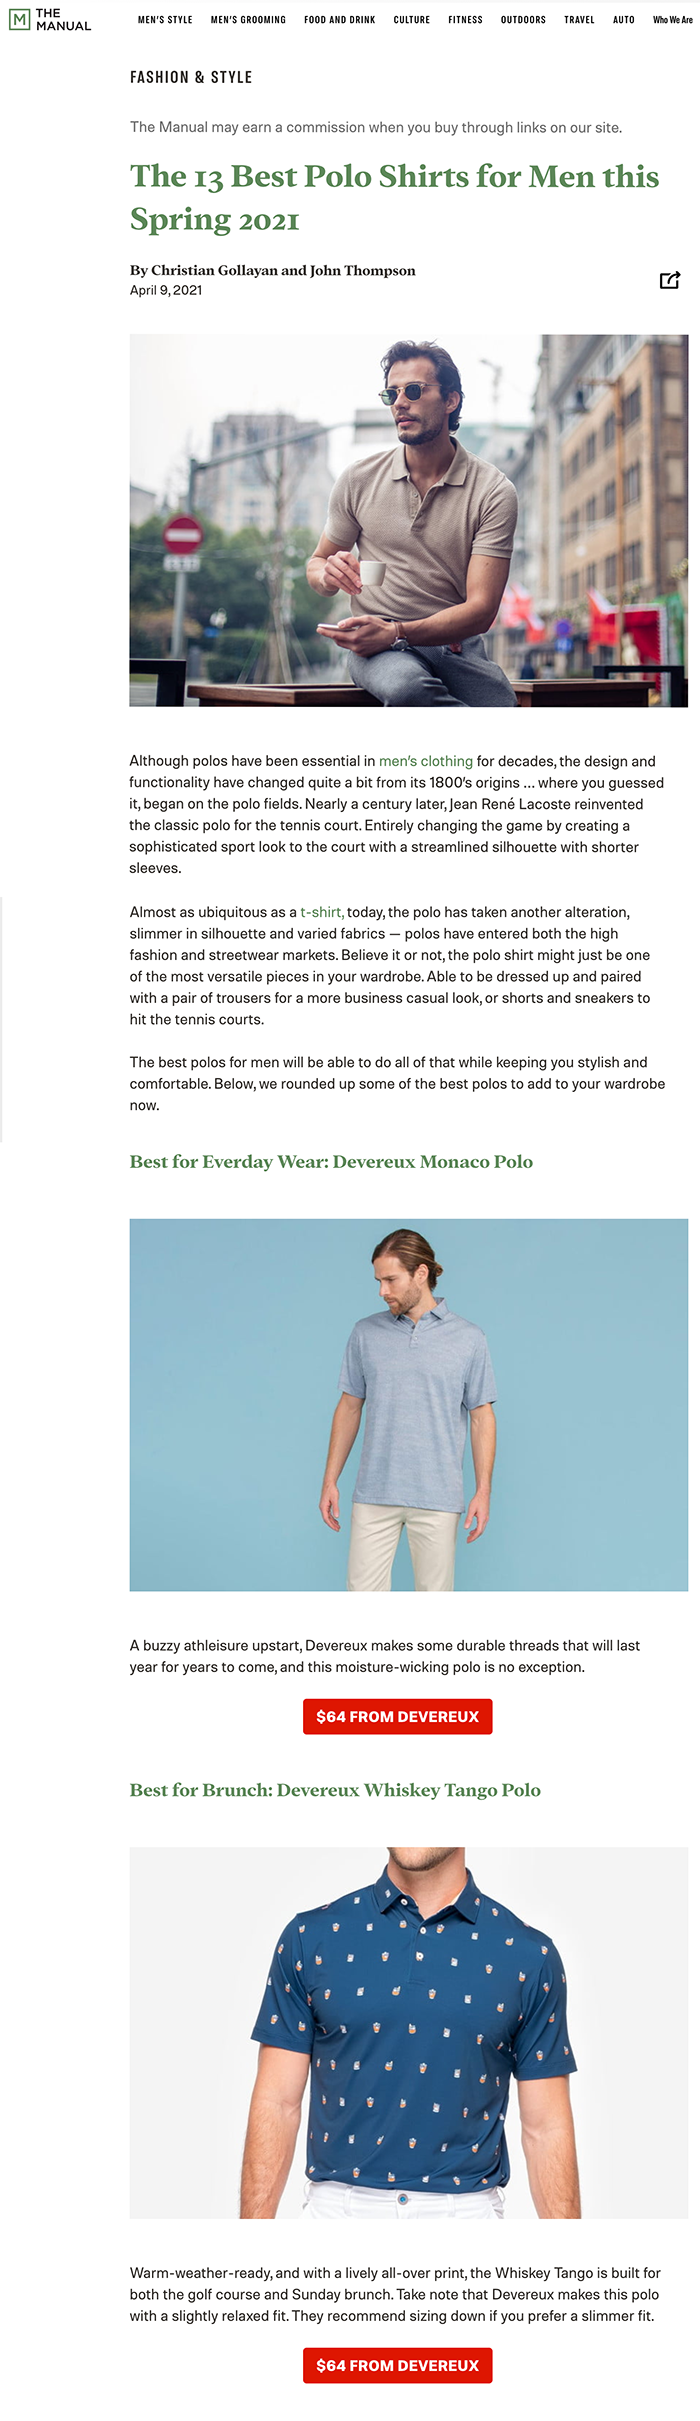 Devereux Golf Best Everyday Polo